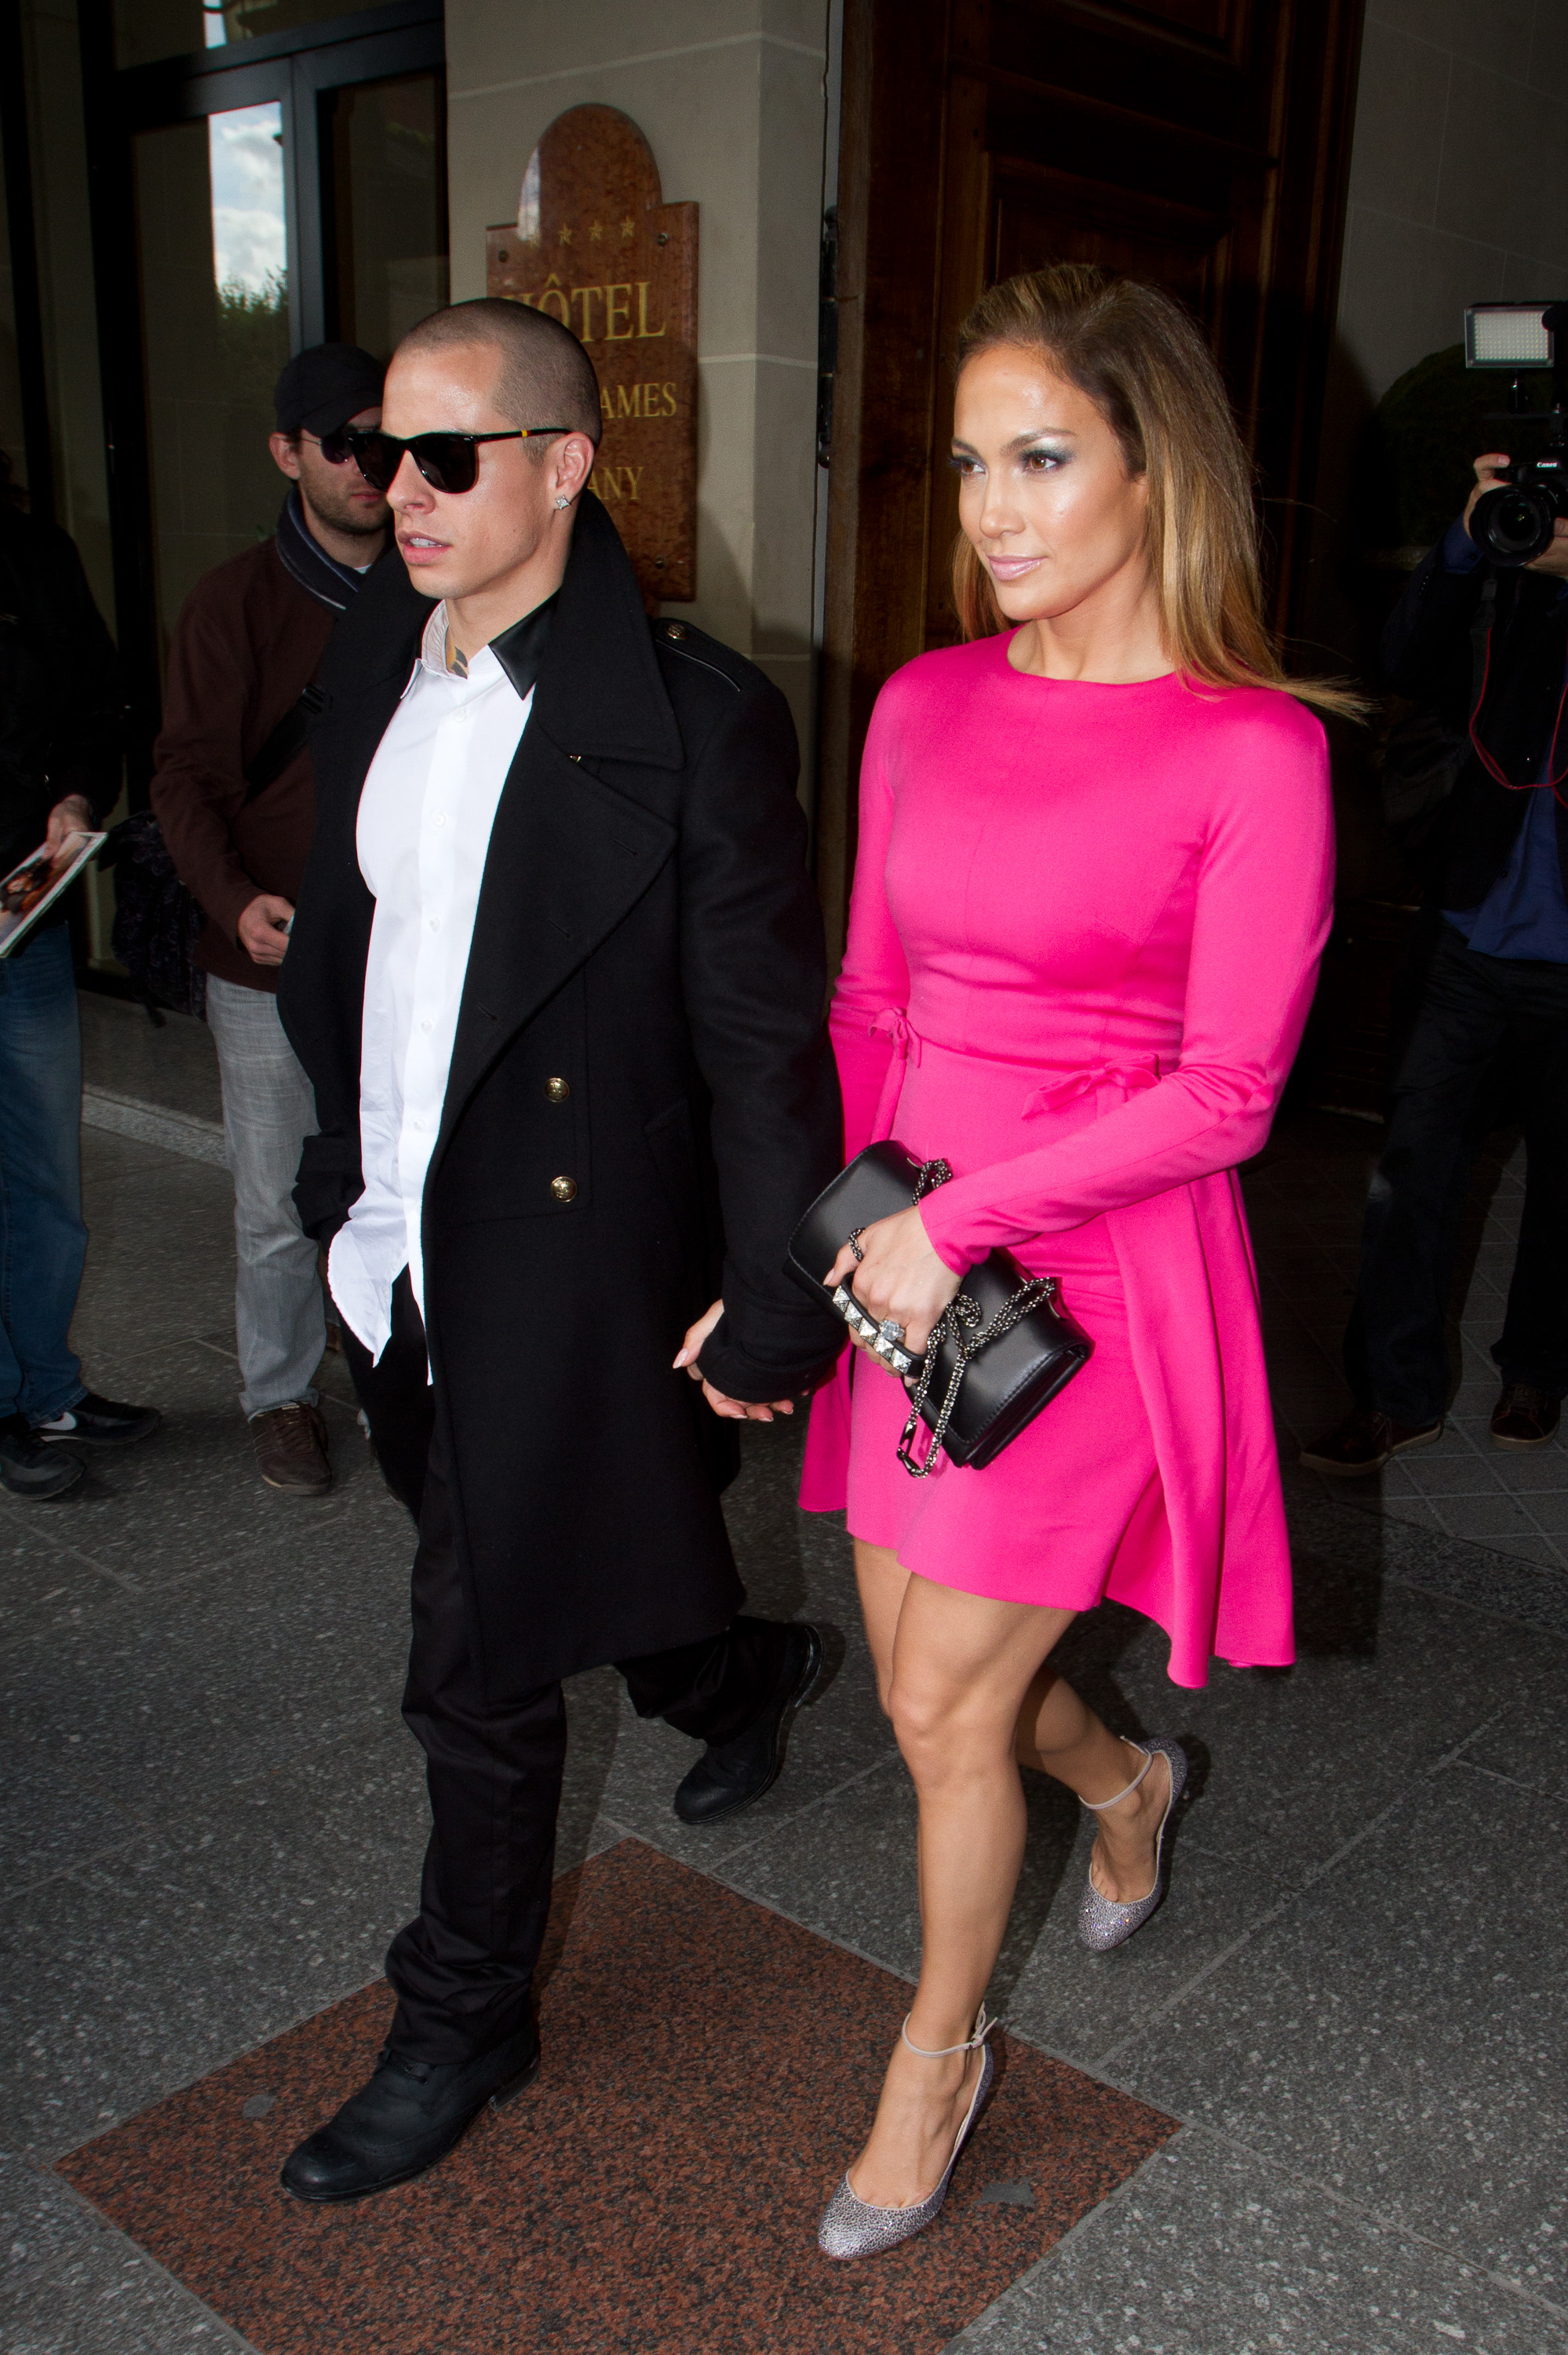 Jennifer Lopez changed into a bright pink dress and lavender ankle-strap pumps for her appearance at Valentino.